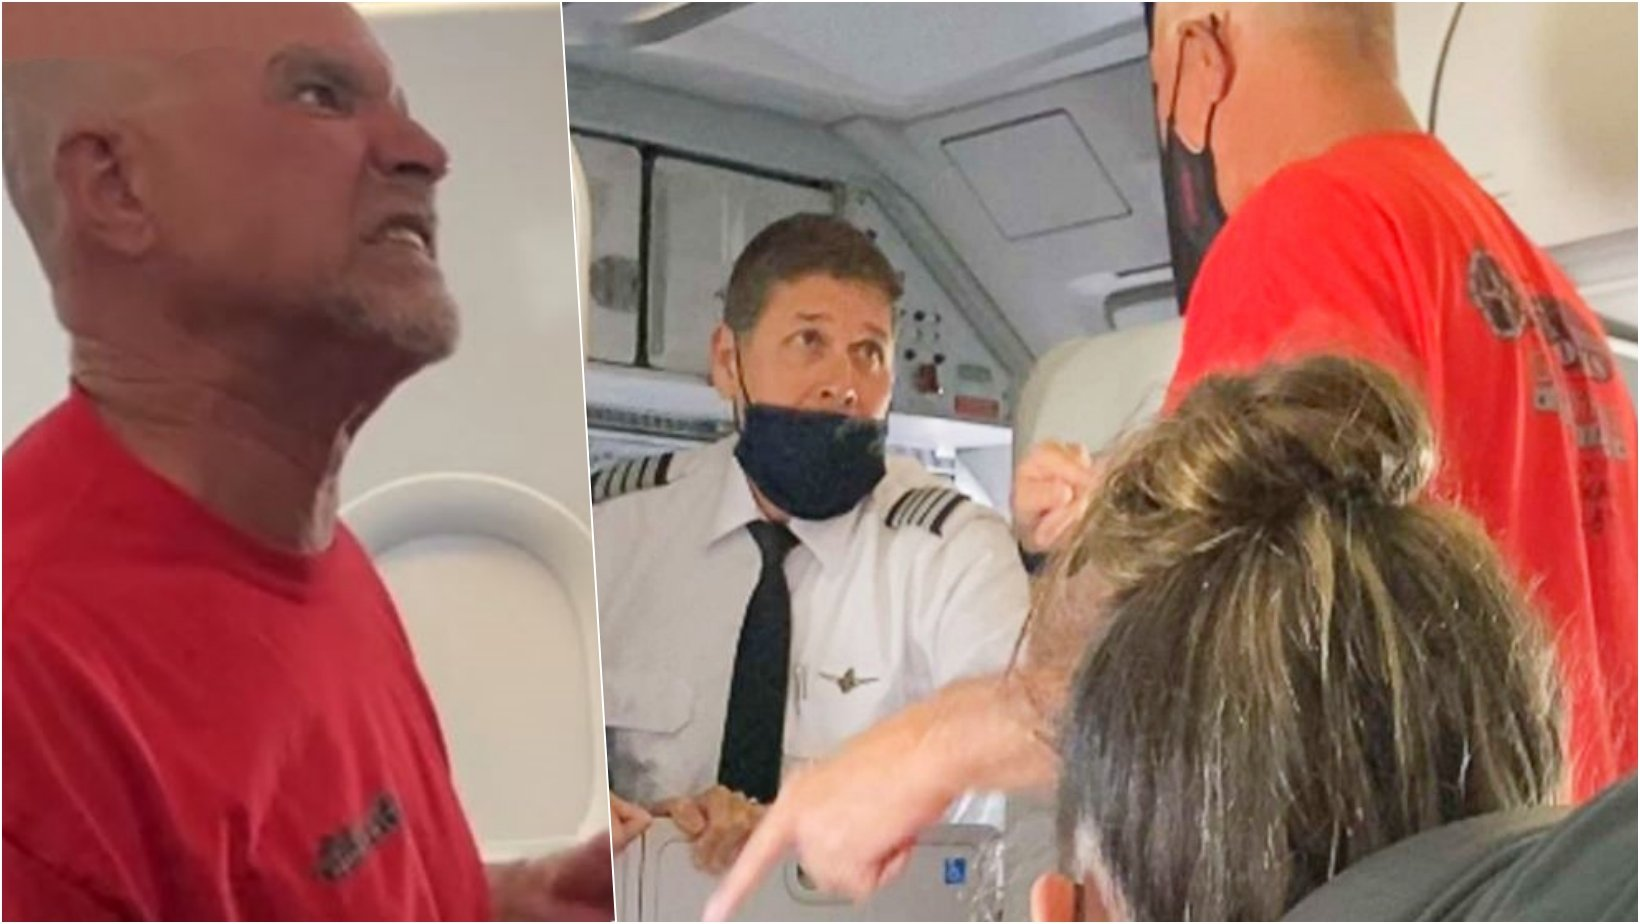 6 facebook cover 10.jpg?resize=412,275 - Drunk Passenger Arrested After Growling Like An Animal At Flight Attendants And Reportedly Shouting Vile, Abusive Rants Towards Them